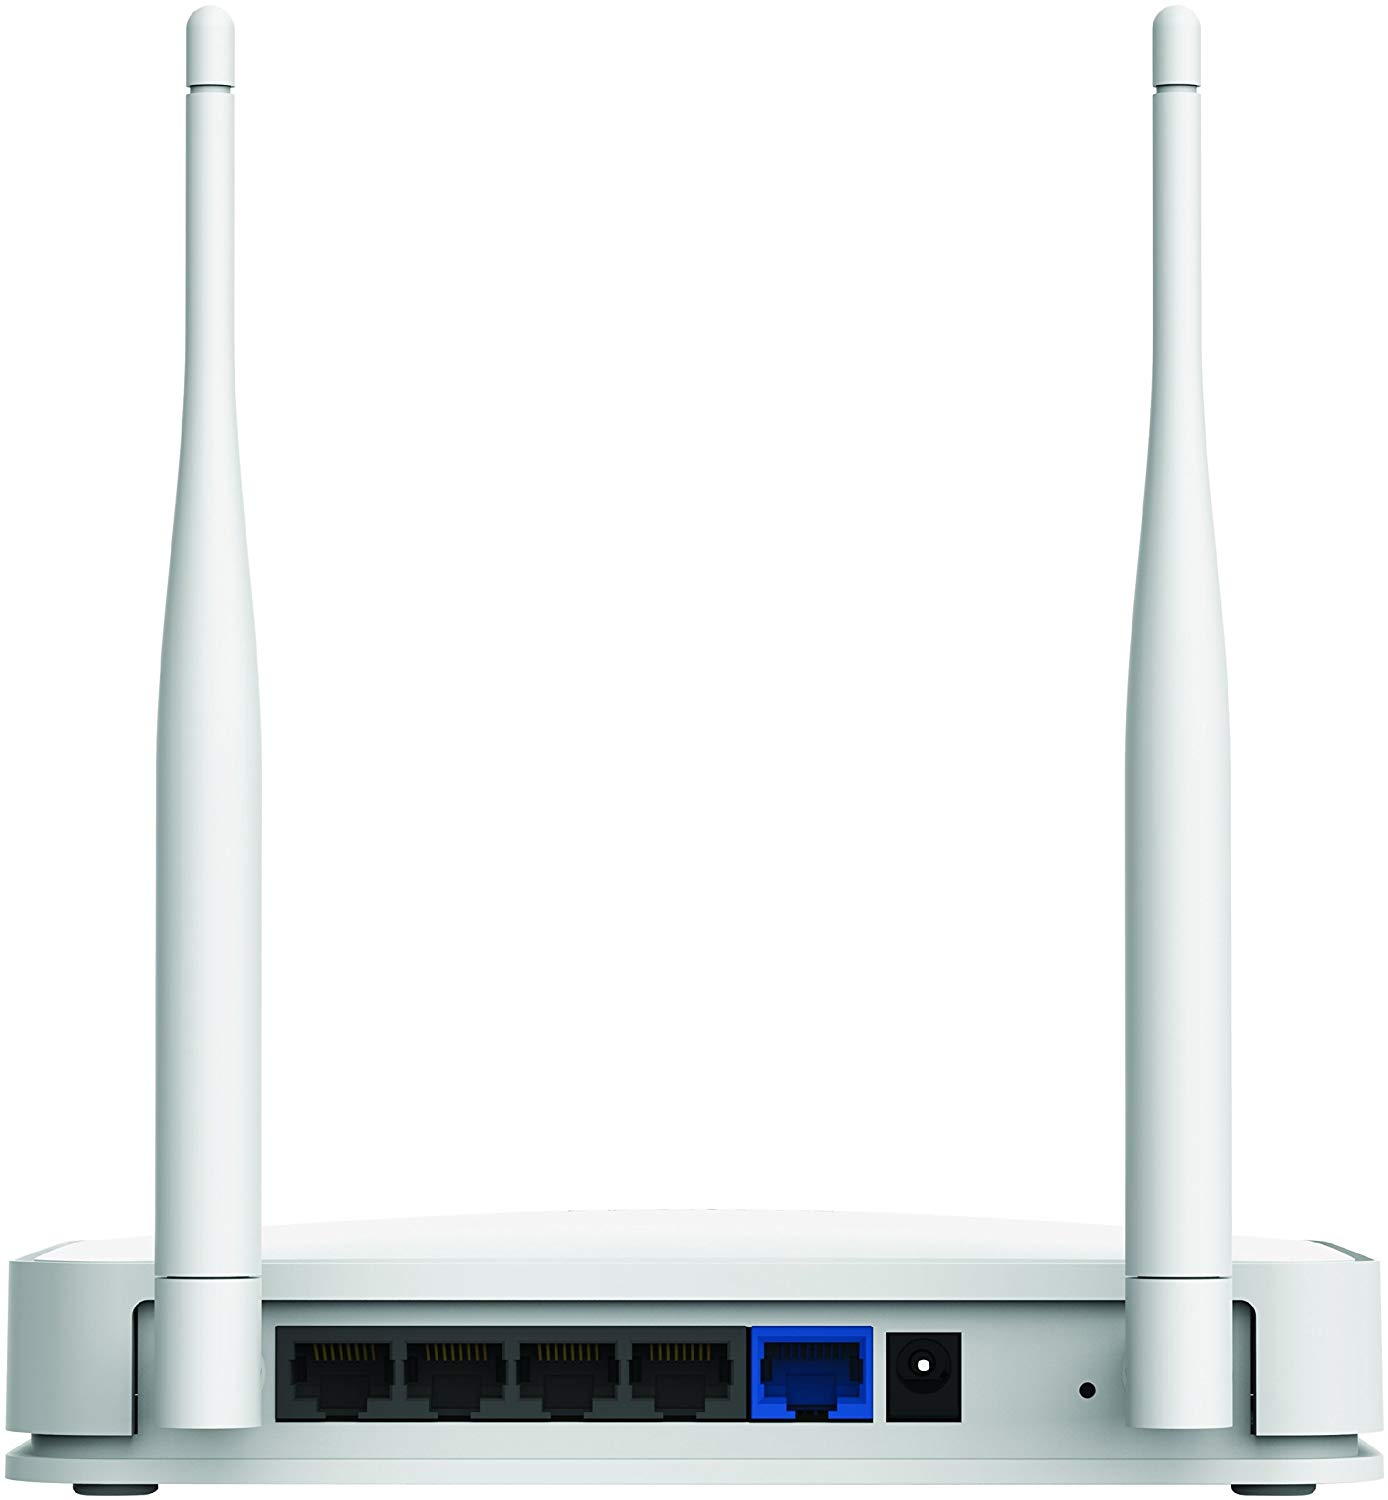 NETGEAR N300 Wi-Fi Router with External Antennas (WNR2020)